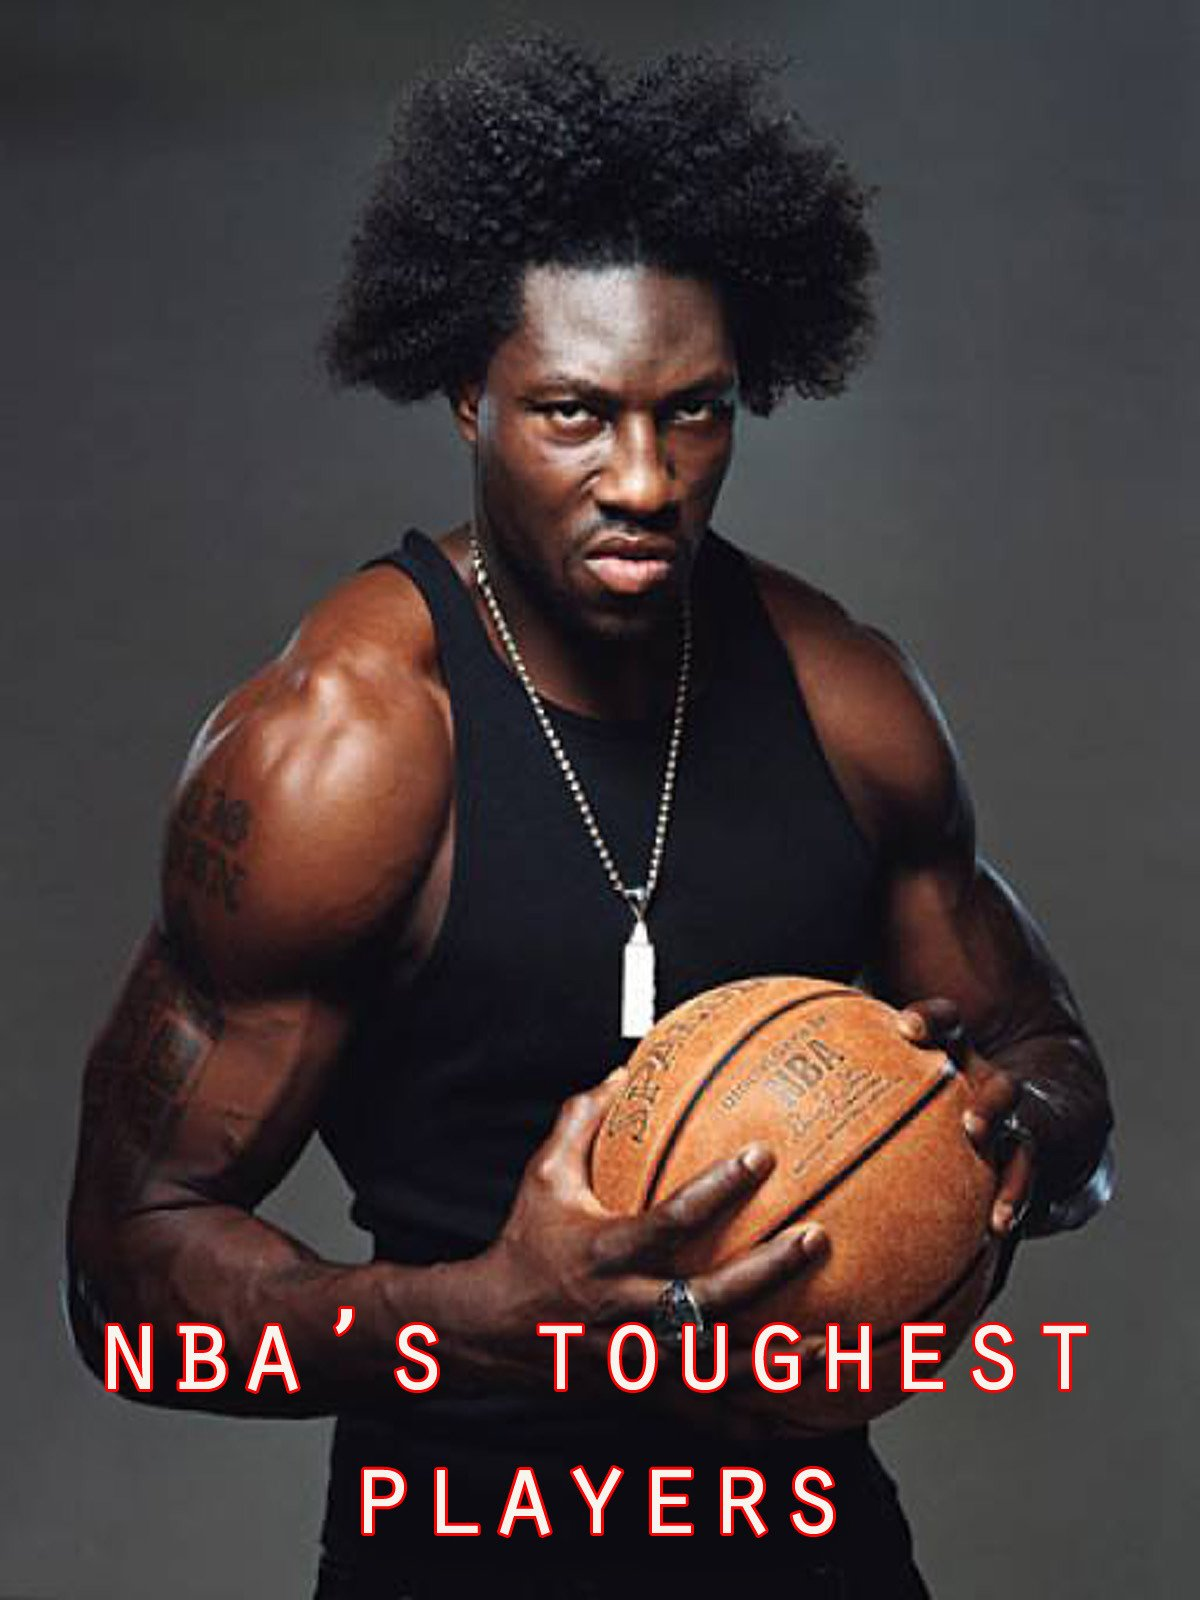 NBA's Toughest Players on Amazon Prime Video UK